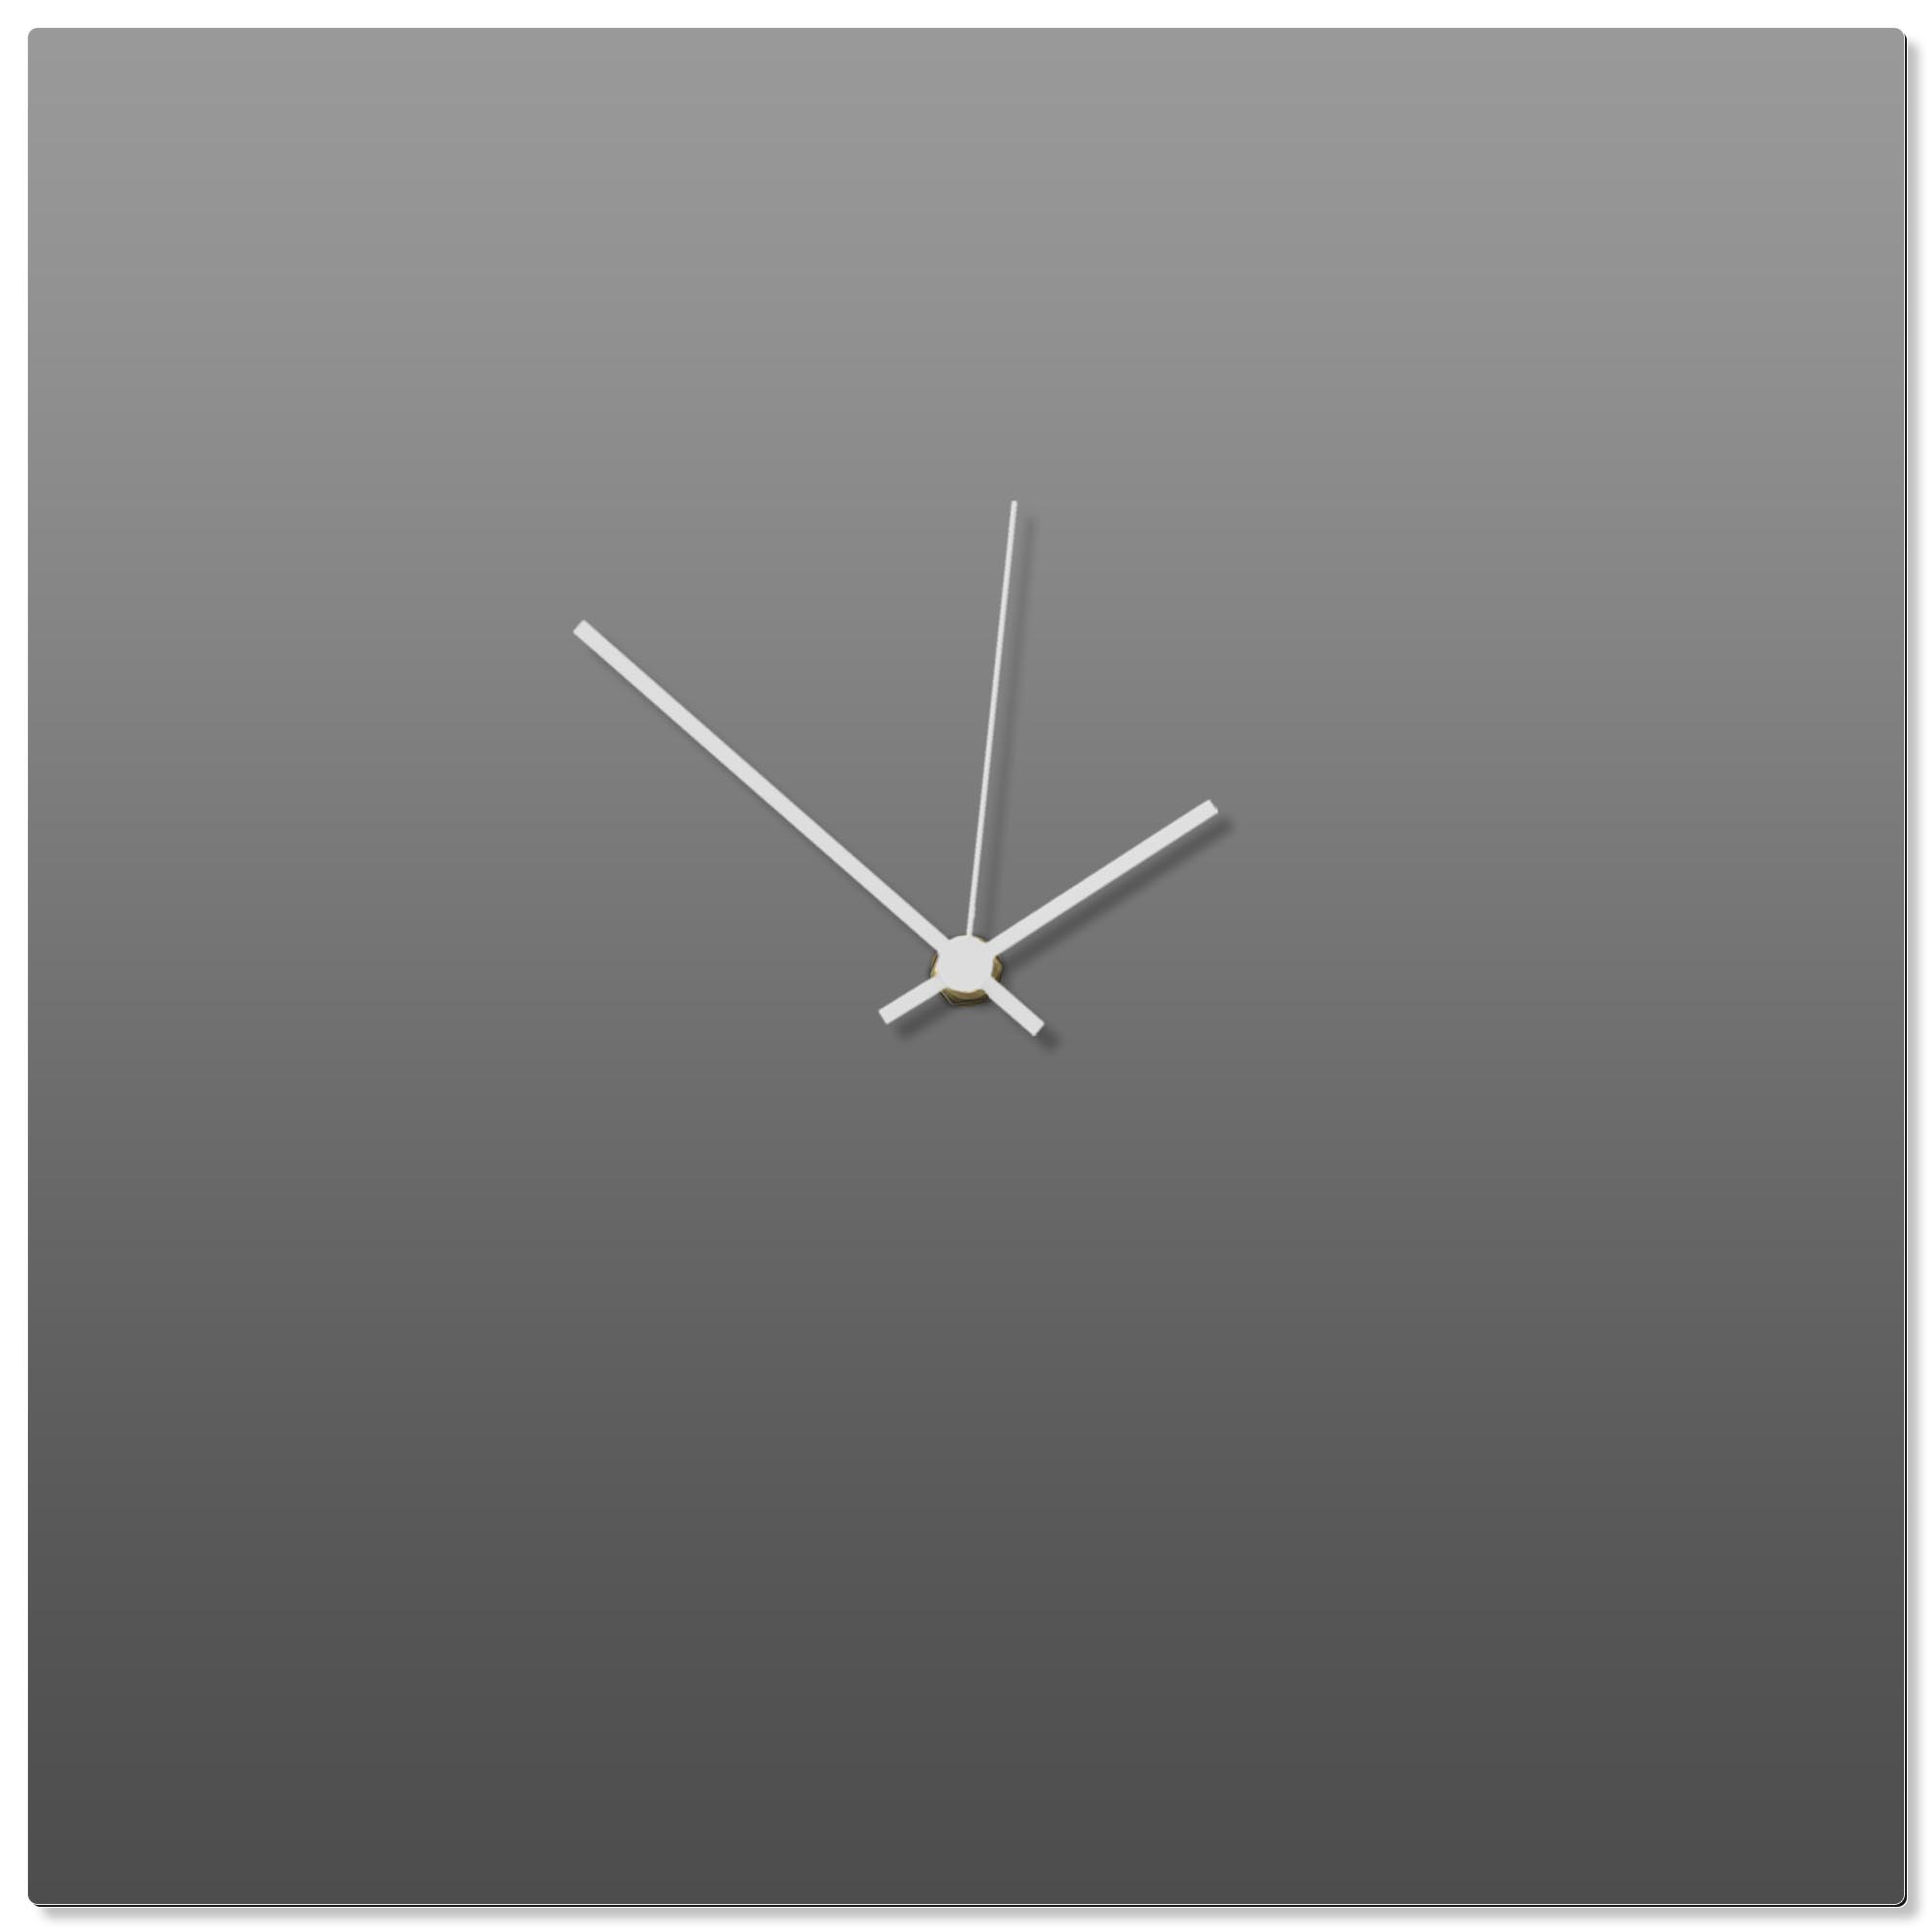 Grayout White Square Clock 16x16in. Aluminum Polymetal